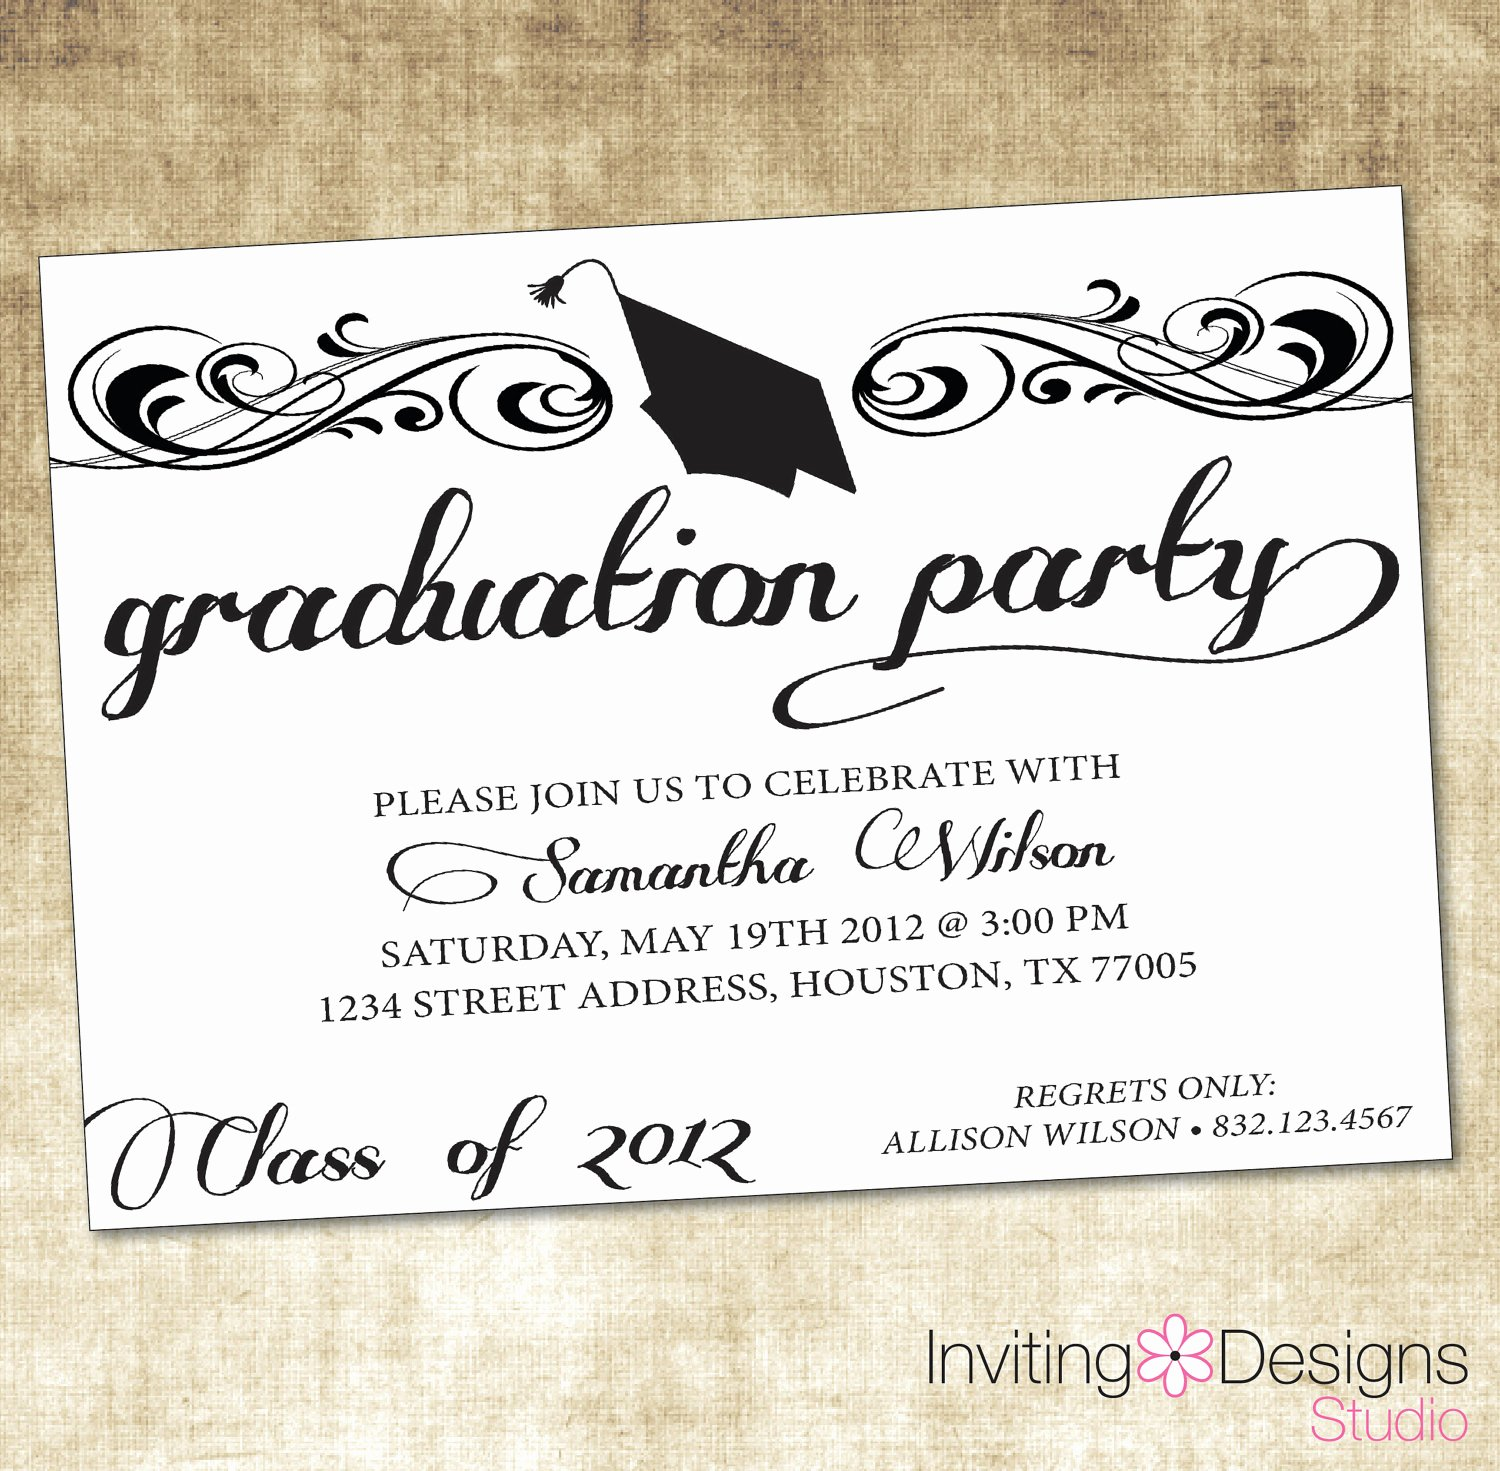 Examples Of Graduation Party Invitations Luxury Quotes for Graduation Party Invitations Quotesgram